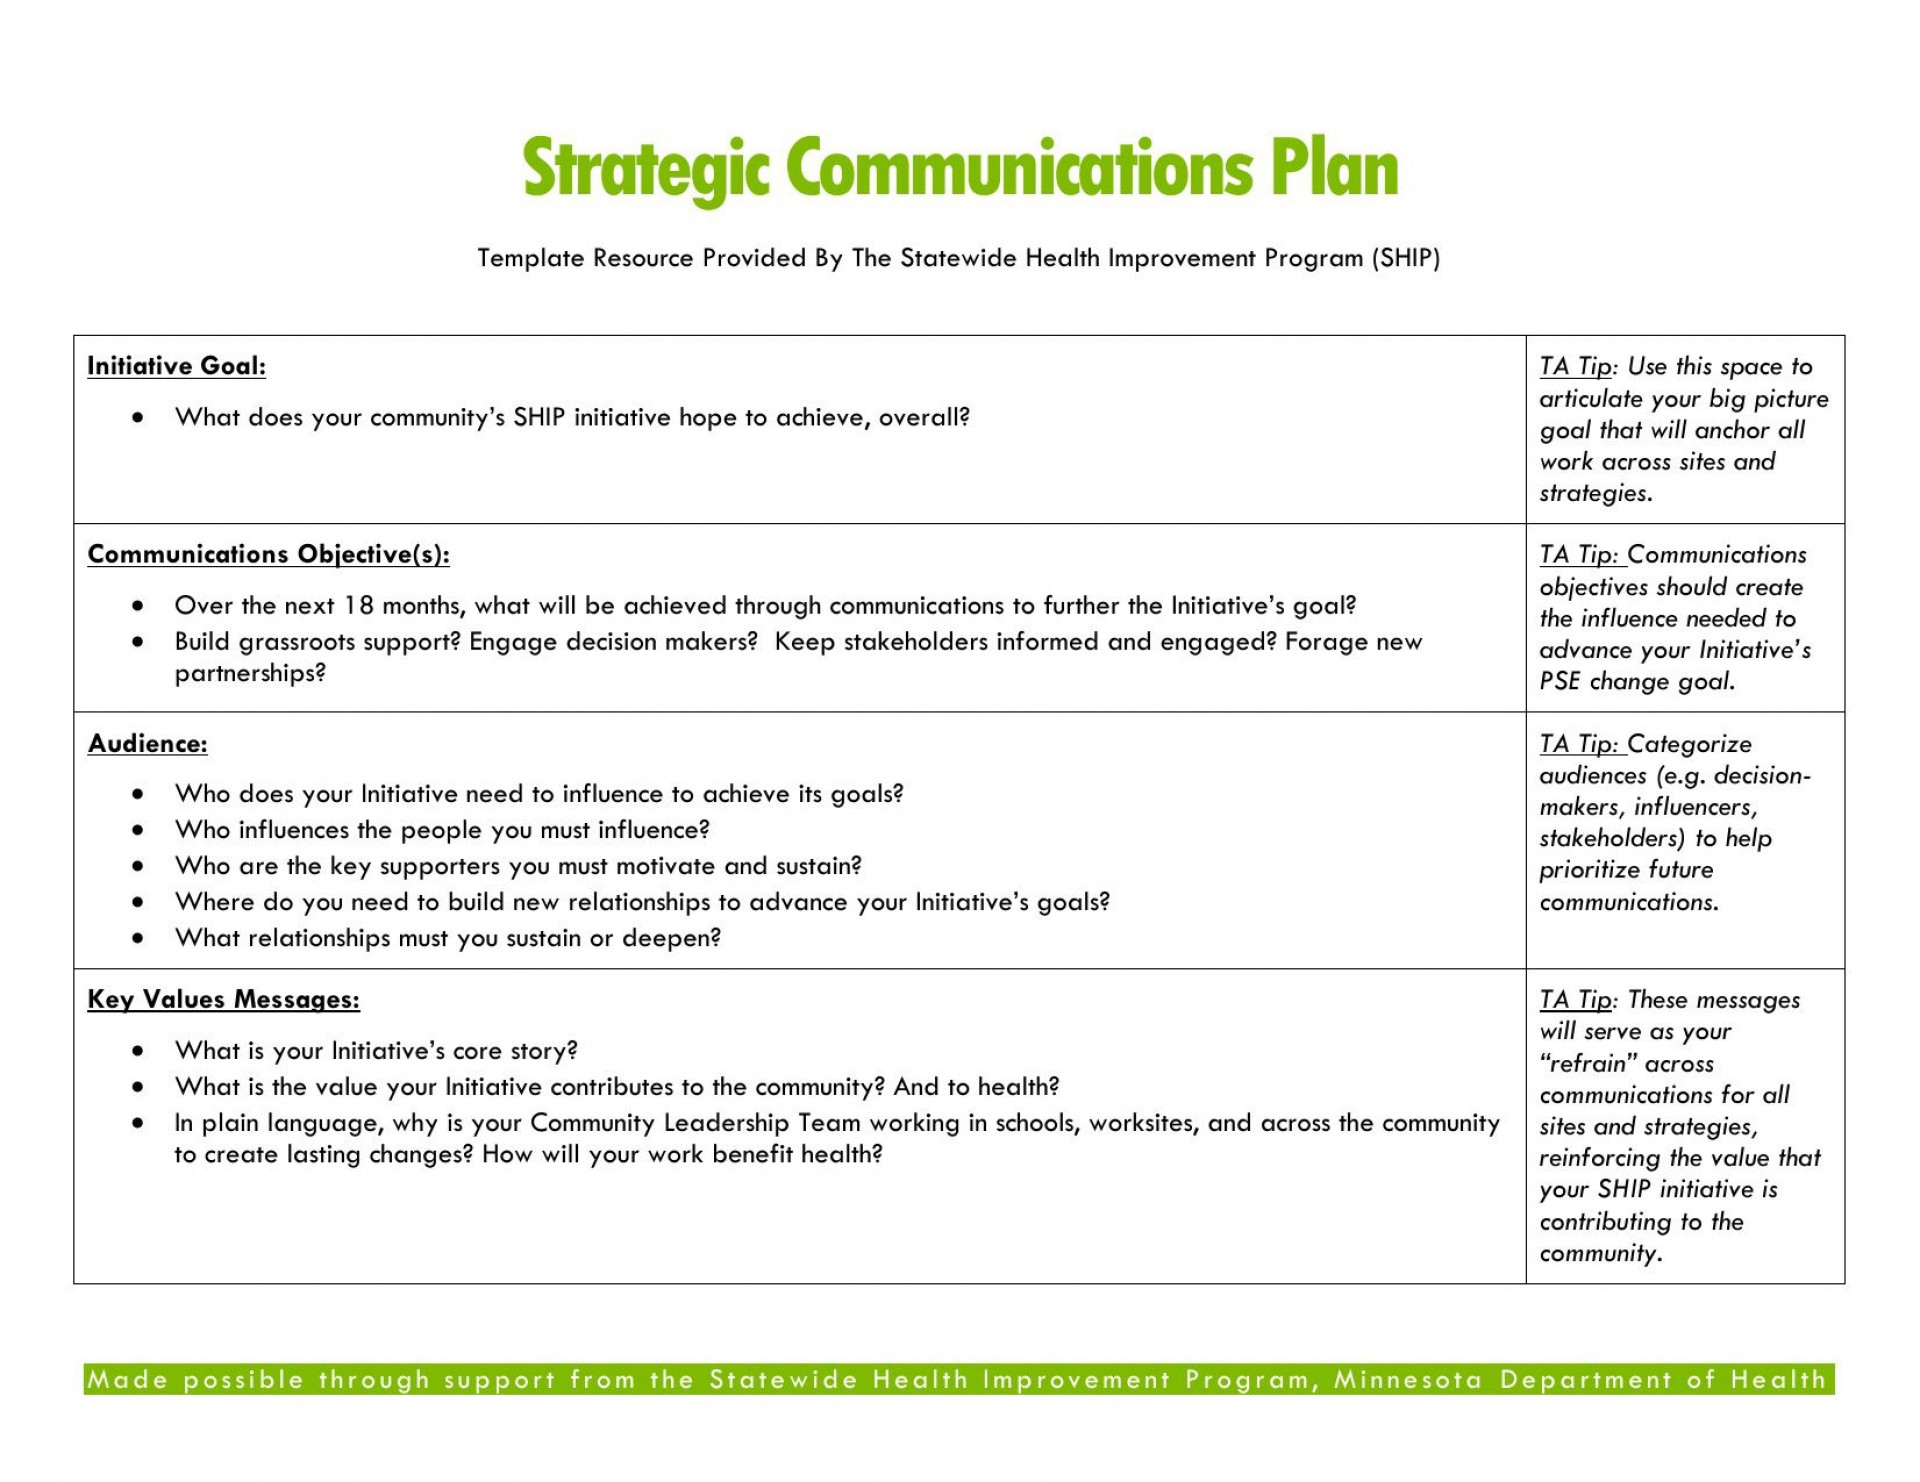 004 Impressive Strategy Communication Plan Template Photo  Internal And Action Example1920